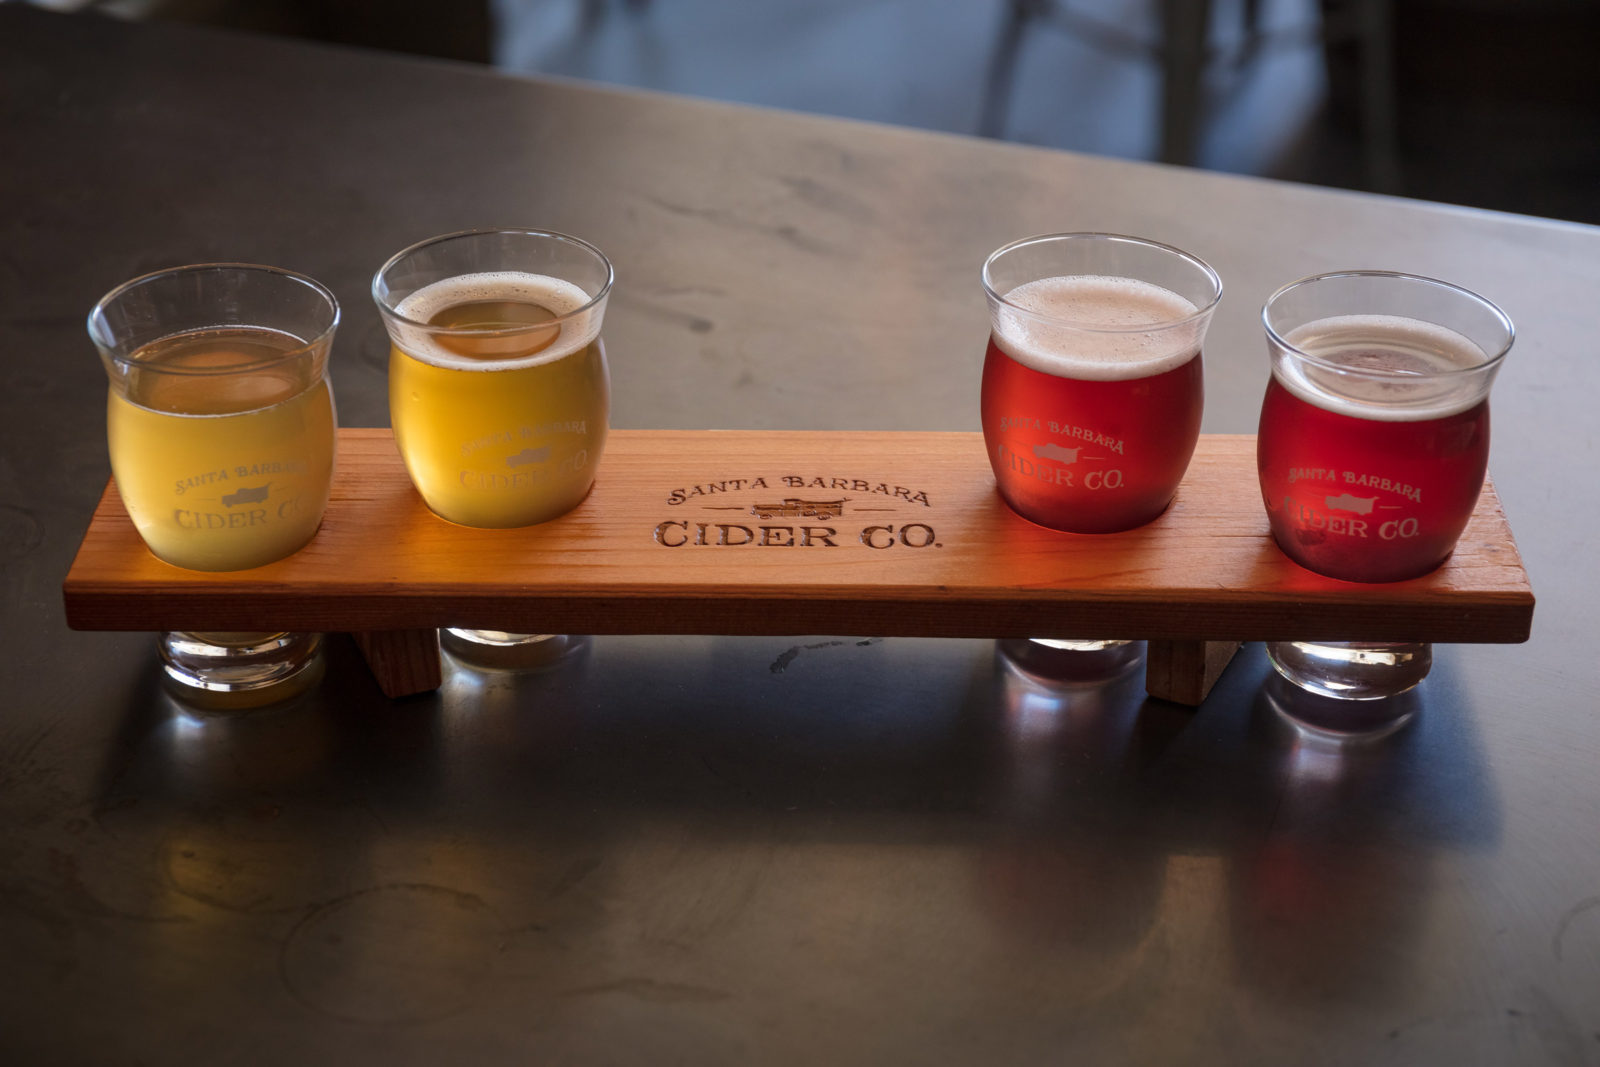 Close up of cider tasters at the Santa Barbara Cider Company's tasting room